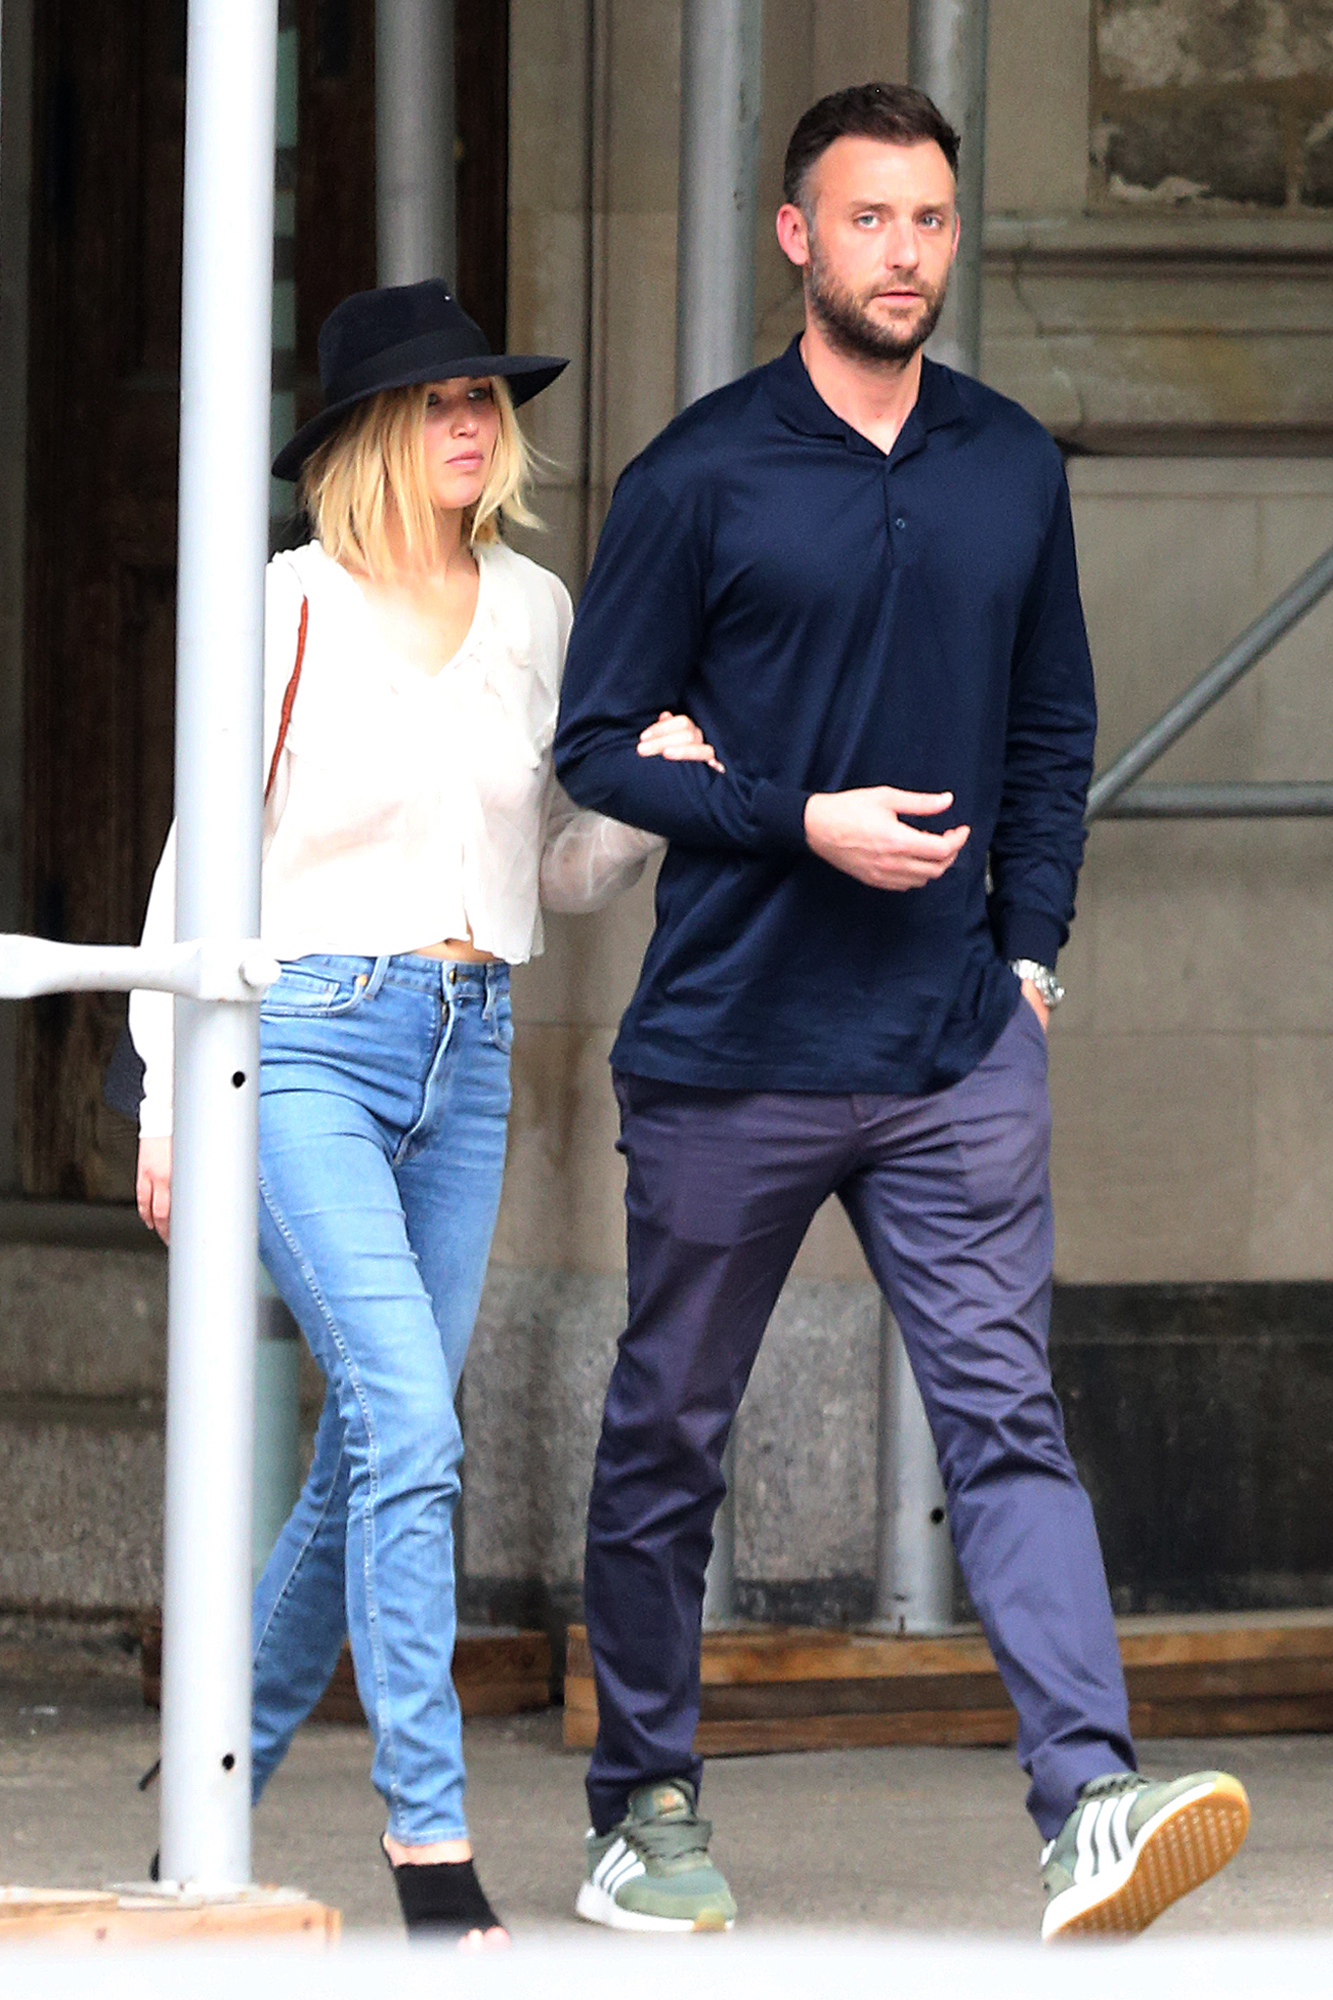 EXCLUSIVE: Jennifer Lawrence Walks Arm in Arm with Cooke Maroney in New York City.